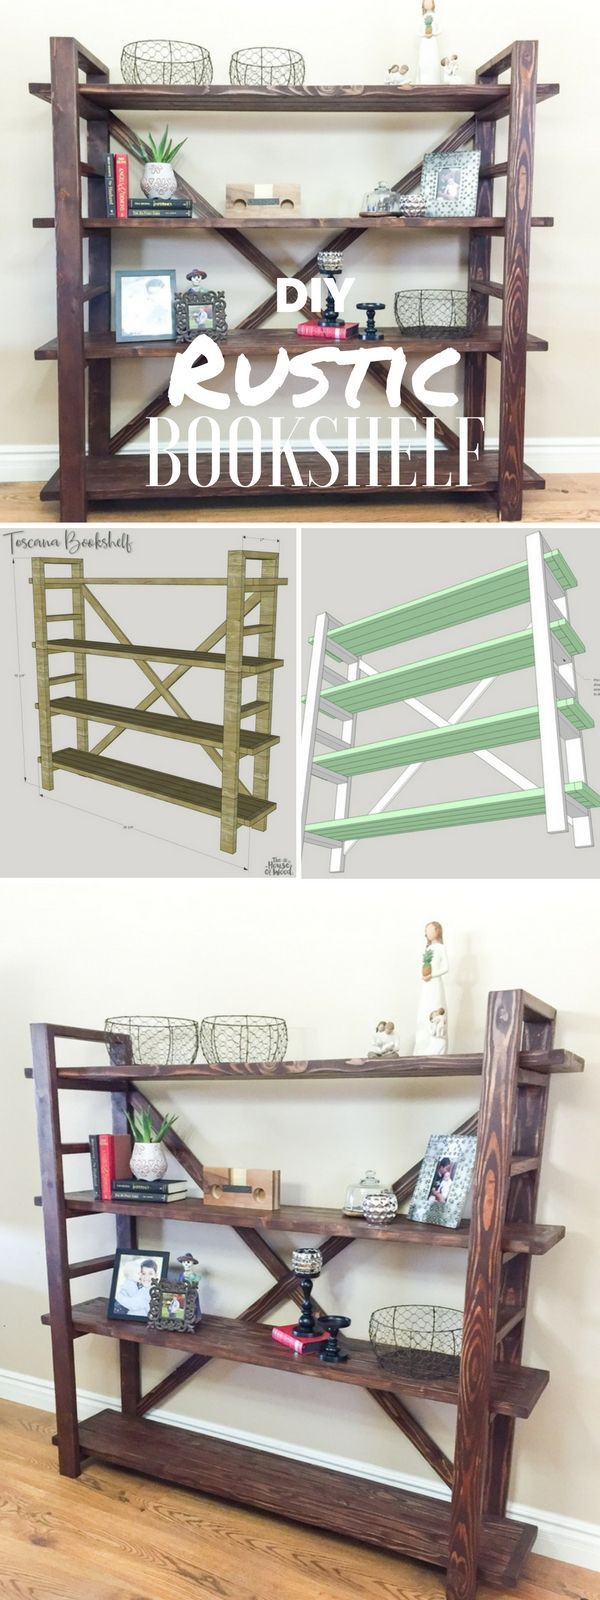 DIY / Rustic / Storage / Furnishings…